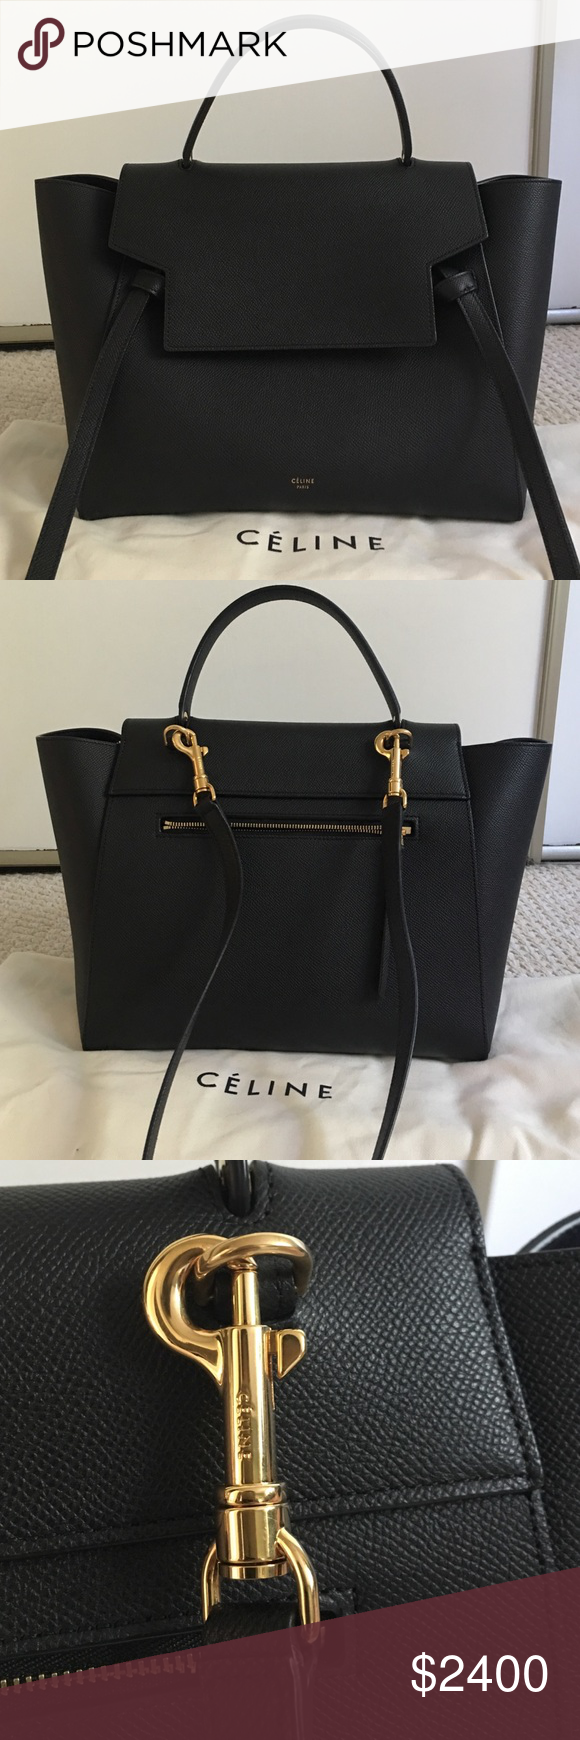 d90f666ff9e Celine Mini Belt Bag - Black Pebbled Leather Celine Mini Belt Bag in pebbled  leather with